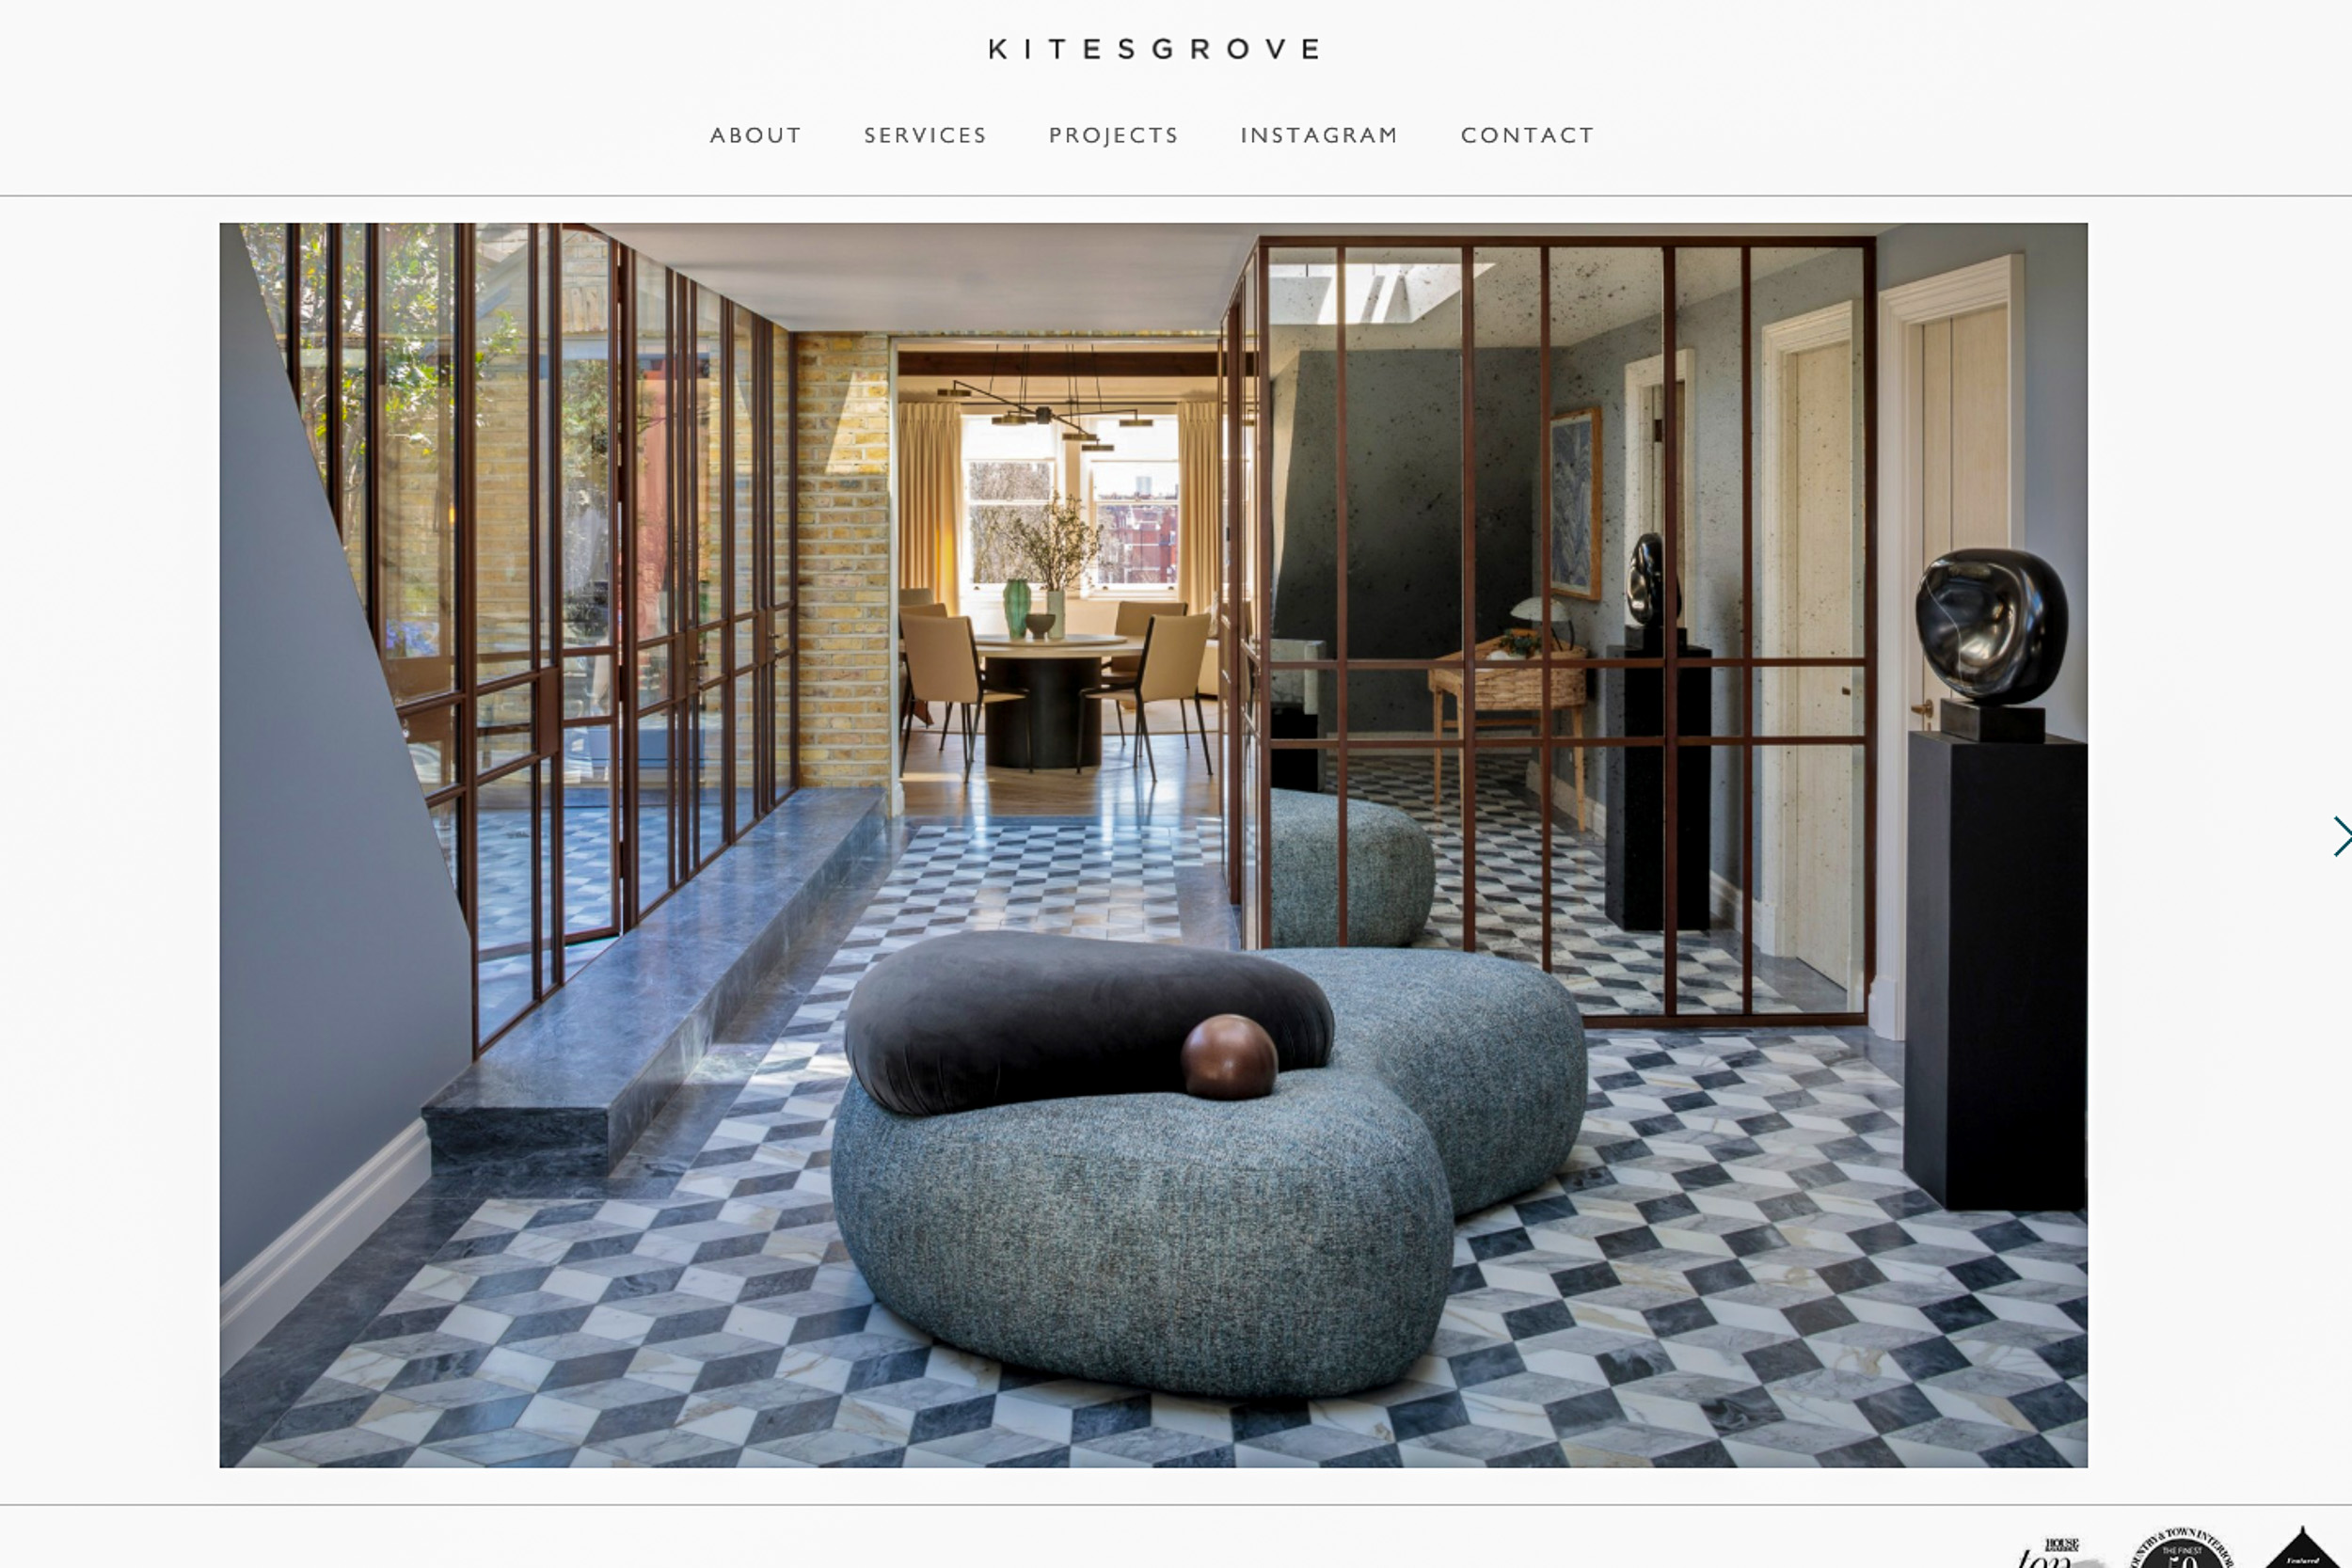 Kitesgrove Interior Design